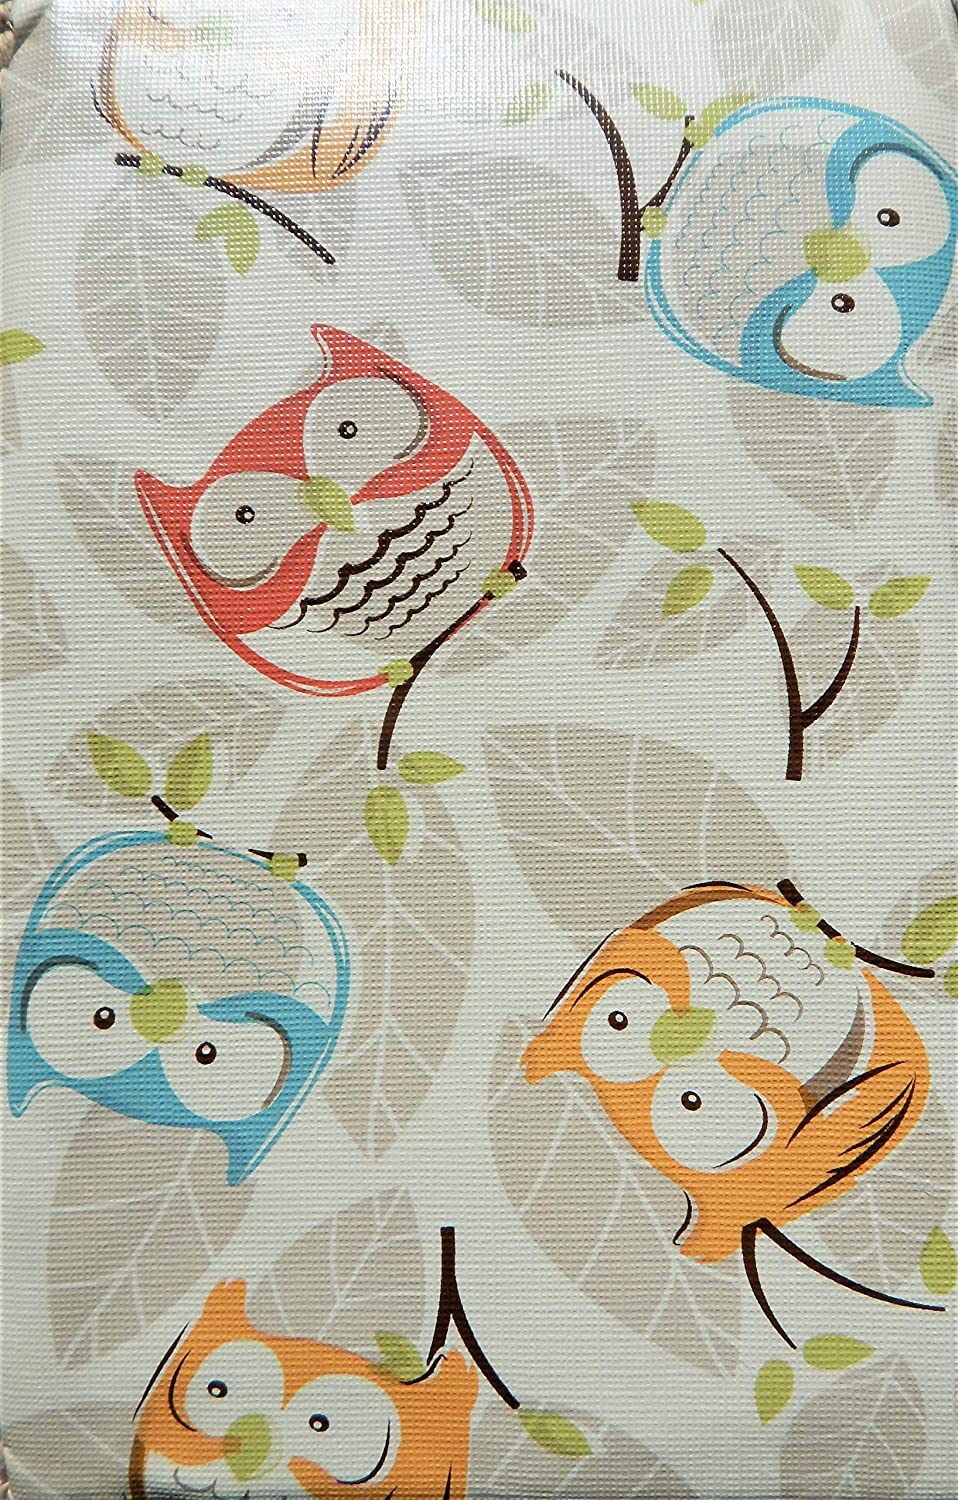 """Crabtree Collection Vinyl Tablecloth: Indoor/Outdoor Dining Flannel Backed Table Cover  Home, Restaurant, Party Tablecloth  Easy to Clean & Sturdy  Picnic, BBQ, Holiday Owl Print Tablecloth (60""""x84"""")"""